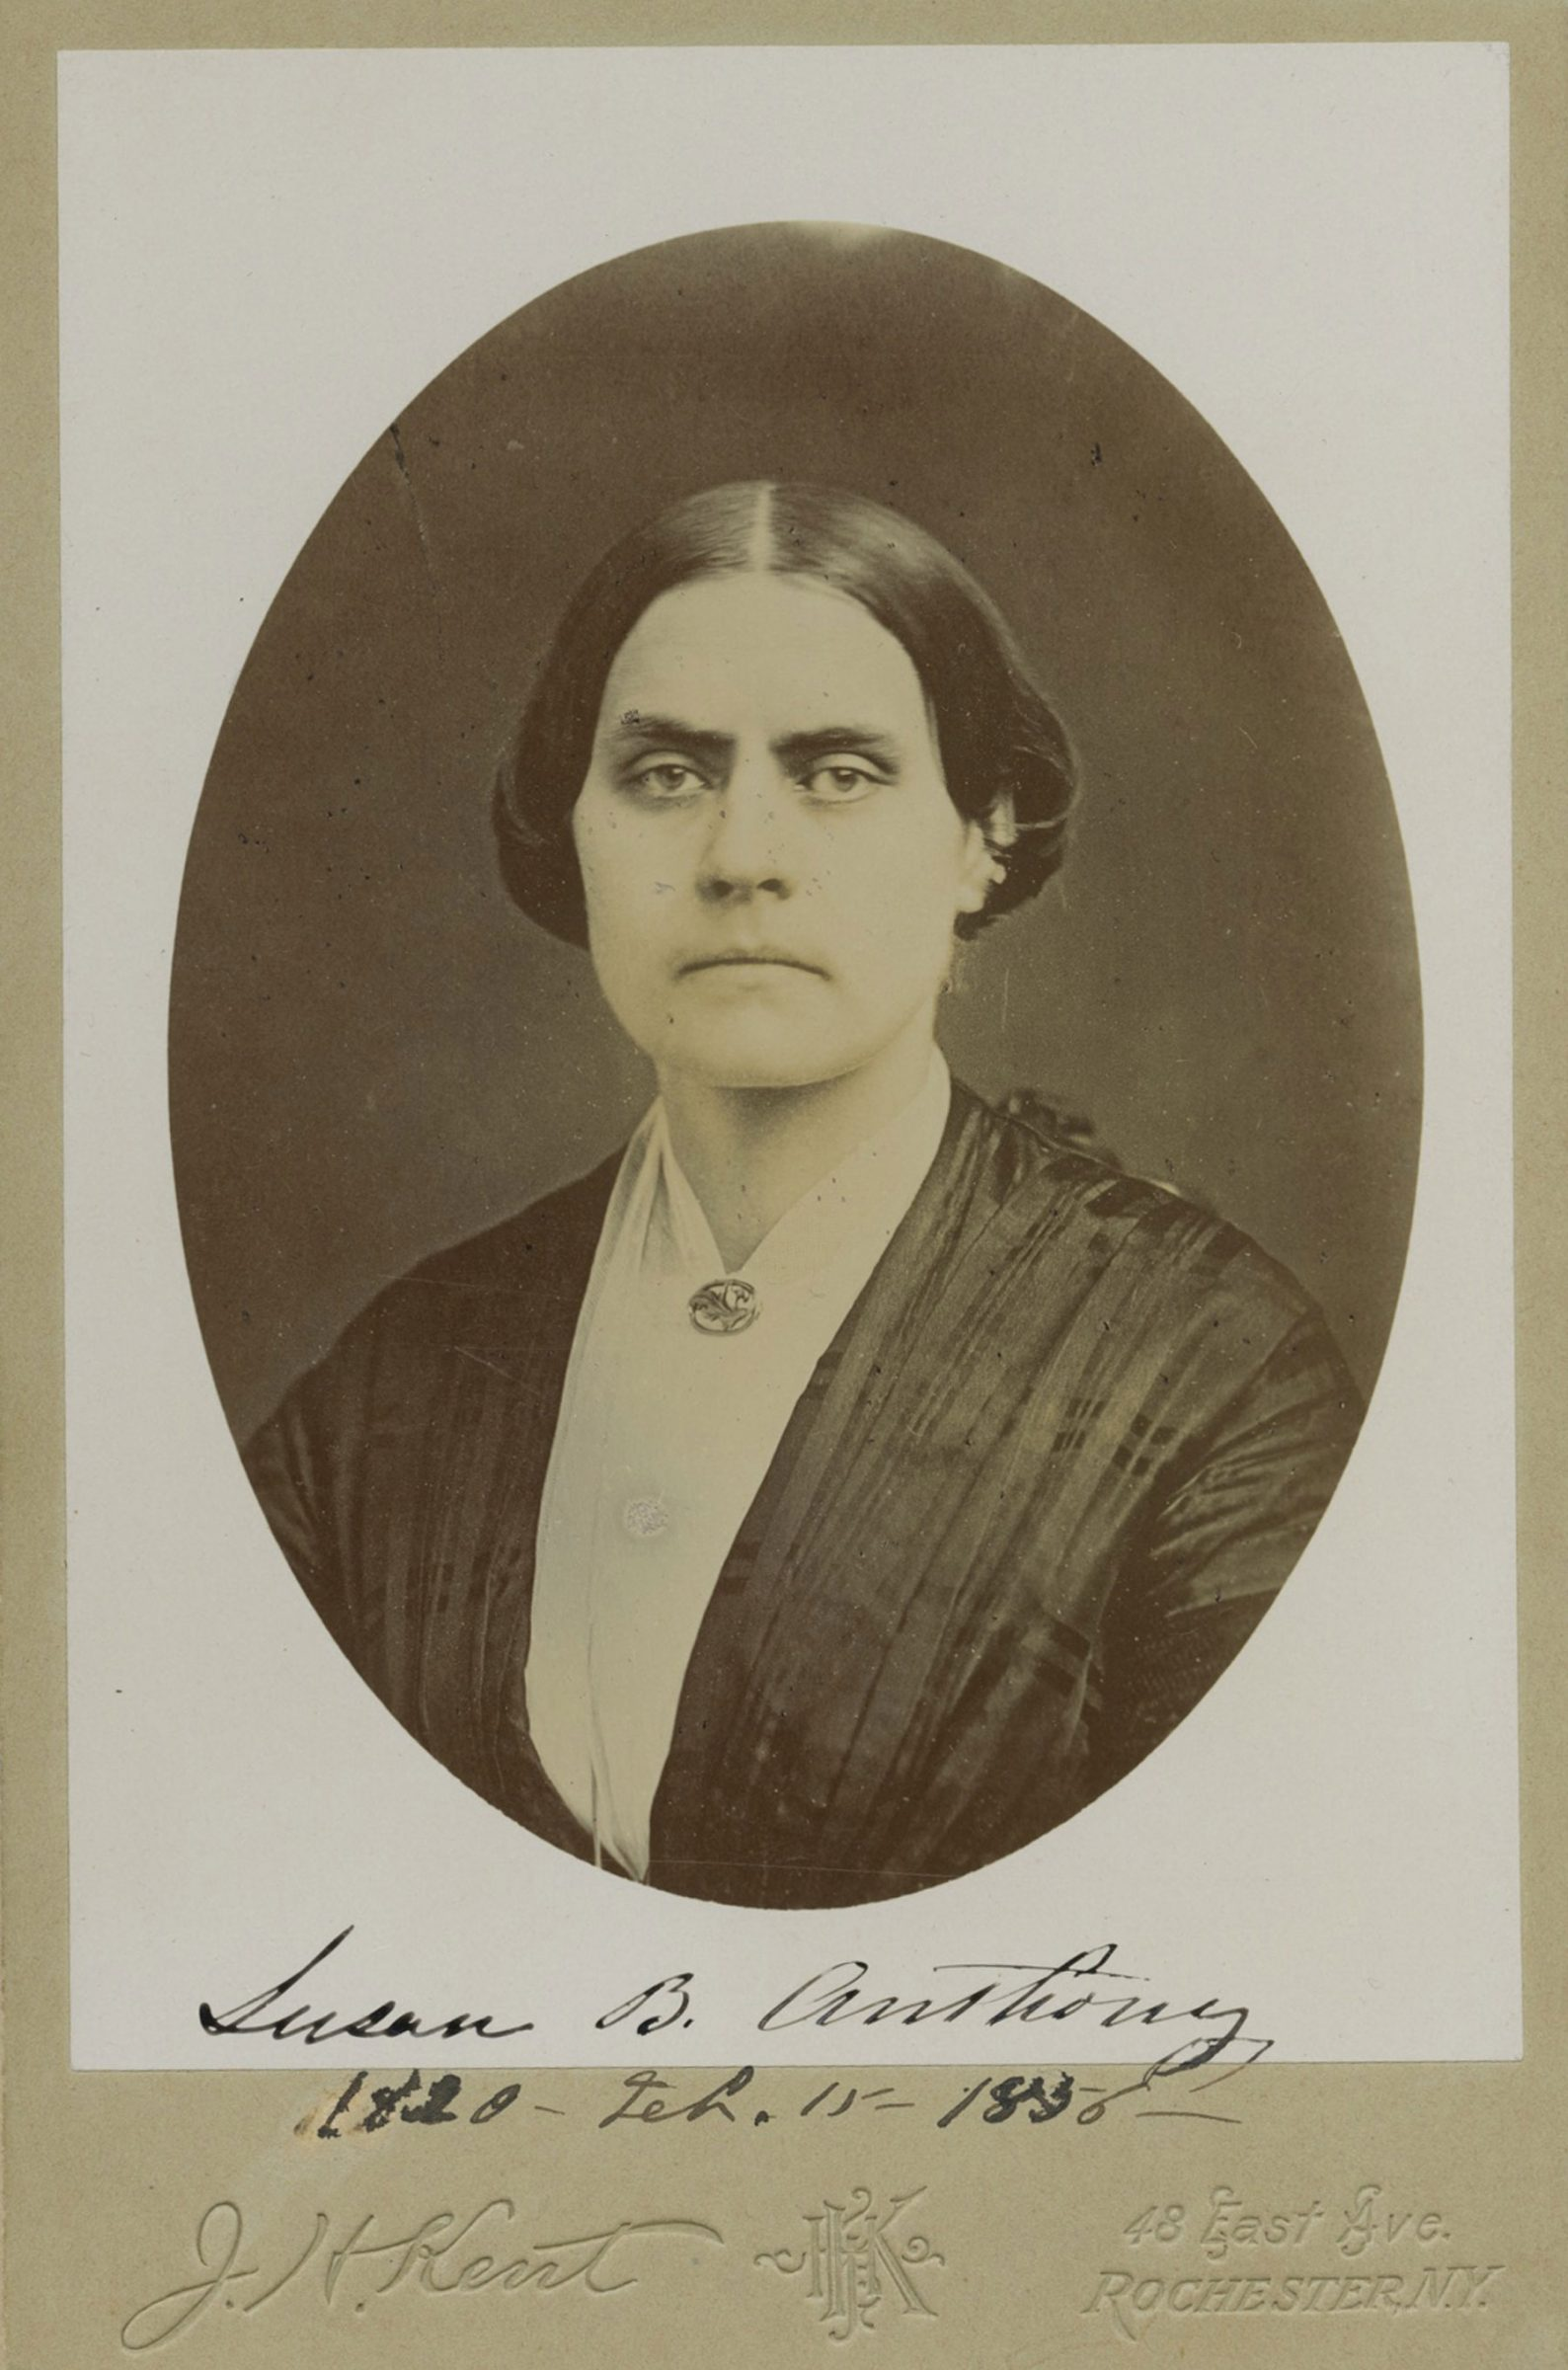 Susan B. Anthony Signed Autograph in 1856 at Age 36